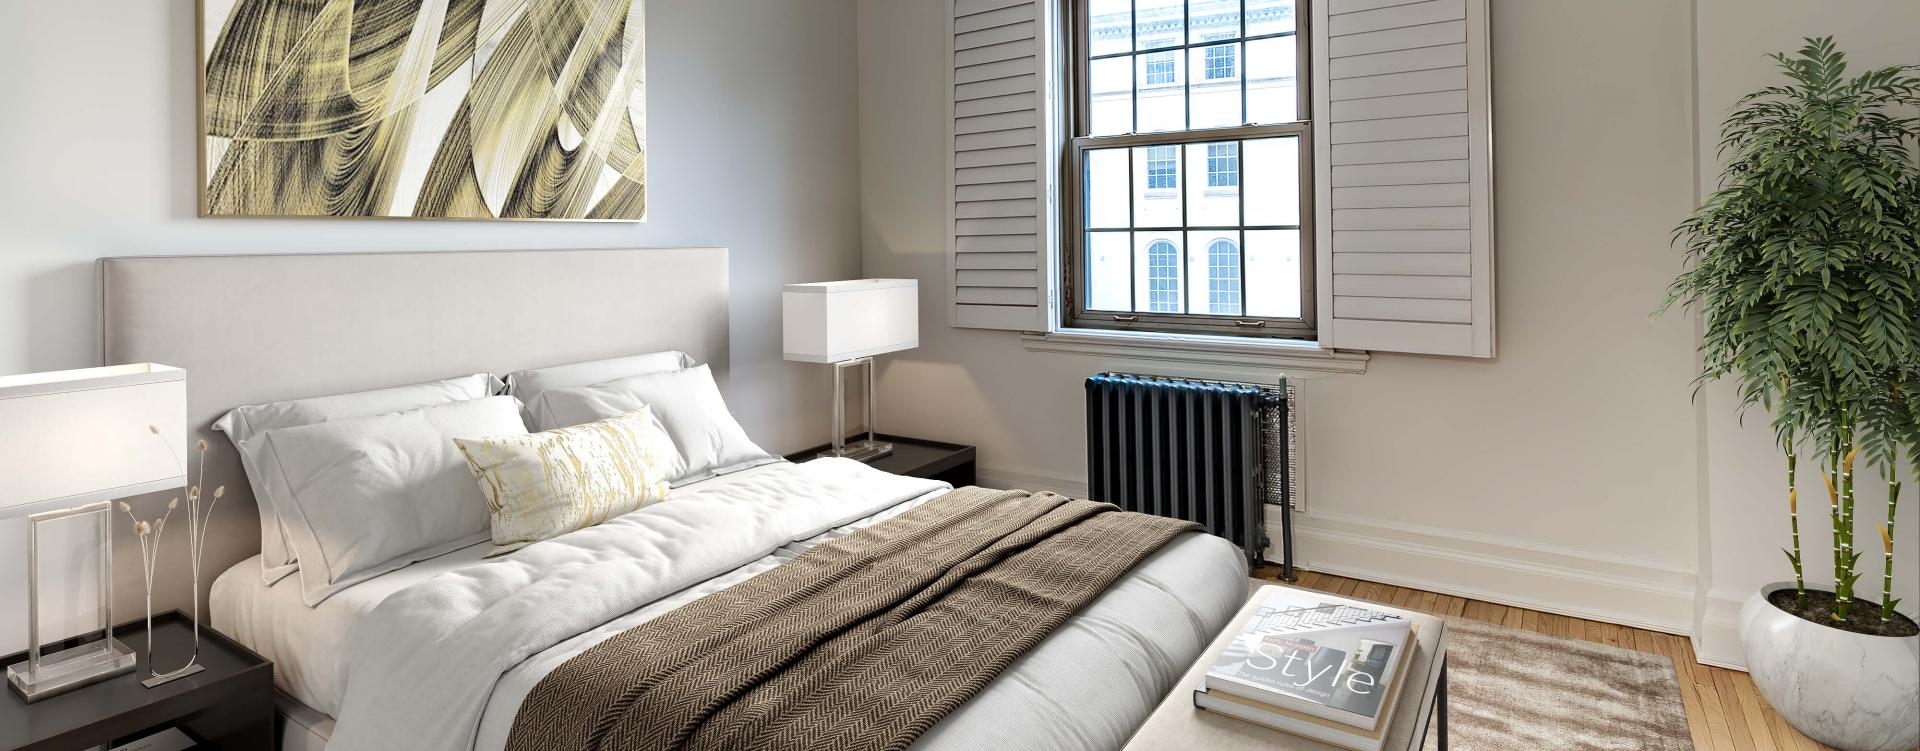 Luxurious bedroom at Haddon Hall apartments in Montreal